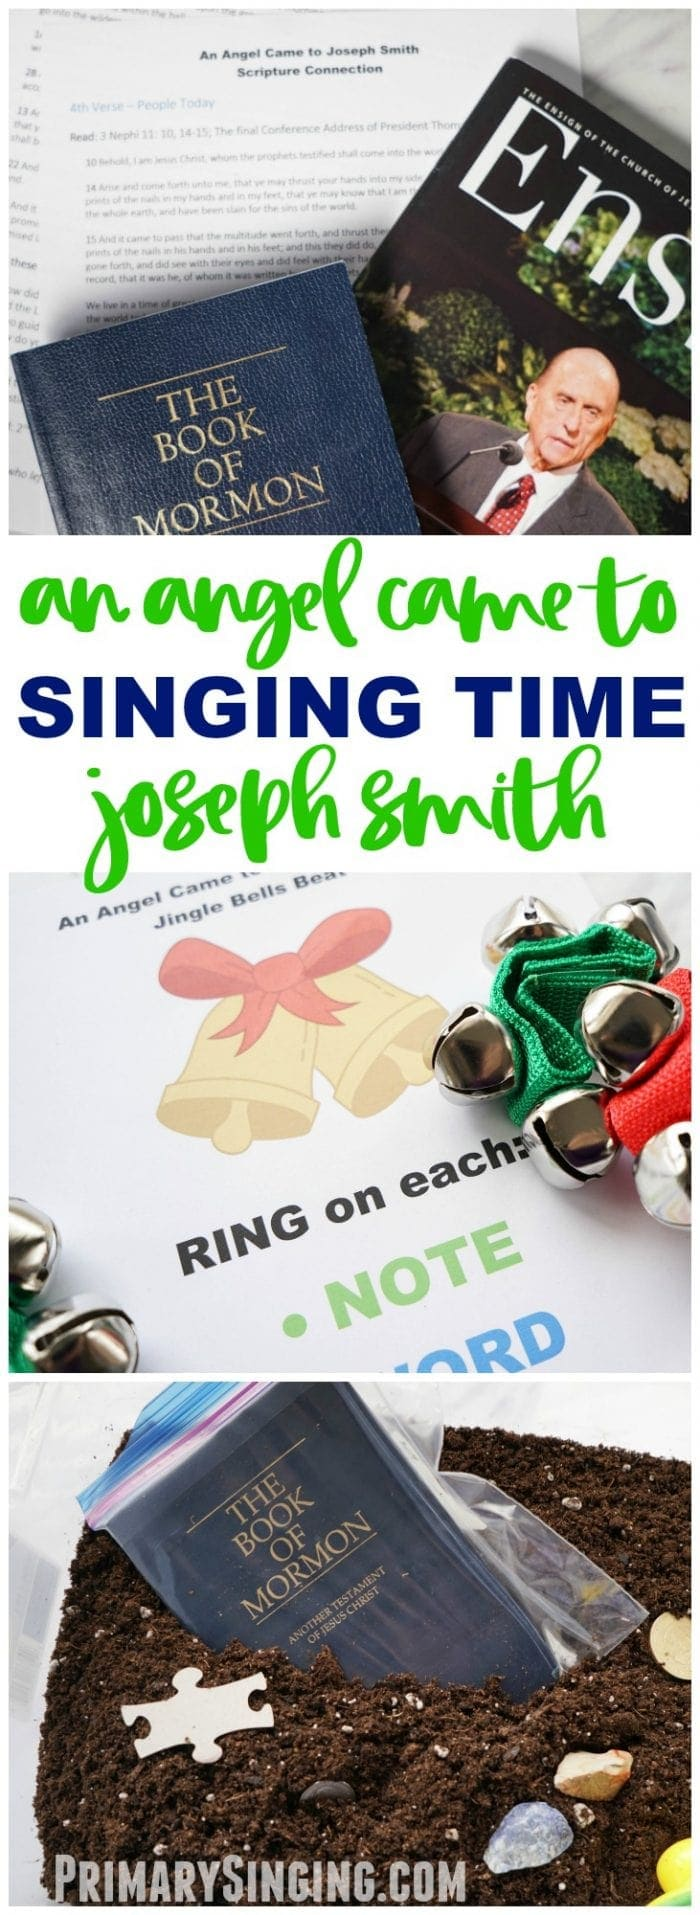 An Angel Came to Joseph Smith - Singing time lesson plan for primary choristers / music leaders. #LDS #Primary #MusicLeaders #PrimaryChorister #Chorister #ImaMormon #SingingTime See all our LDS last minute printables, games + ideas!